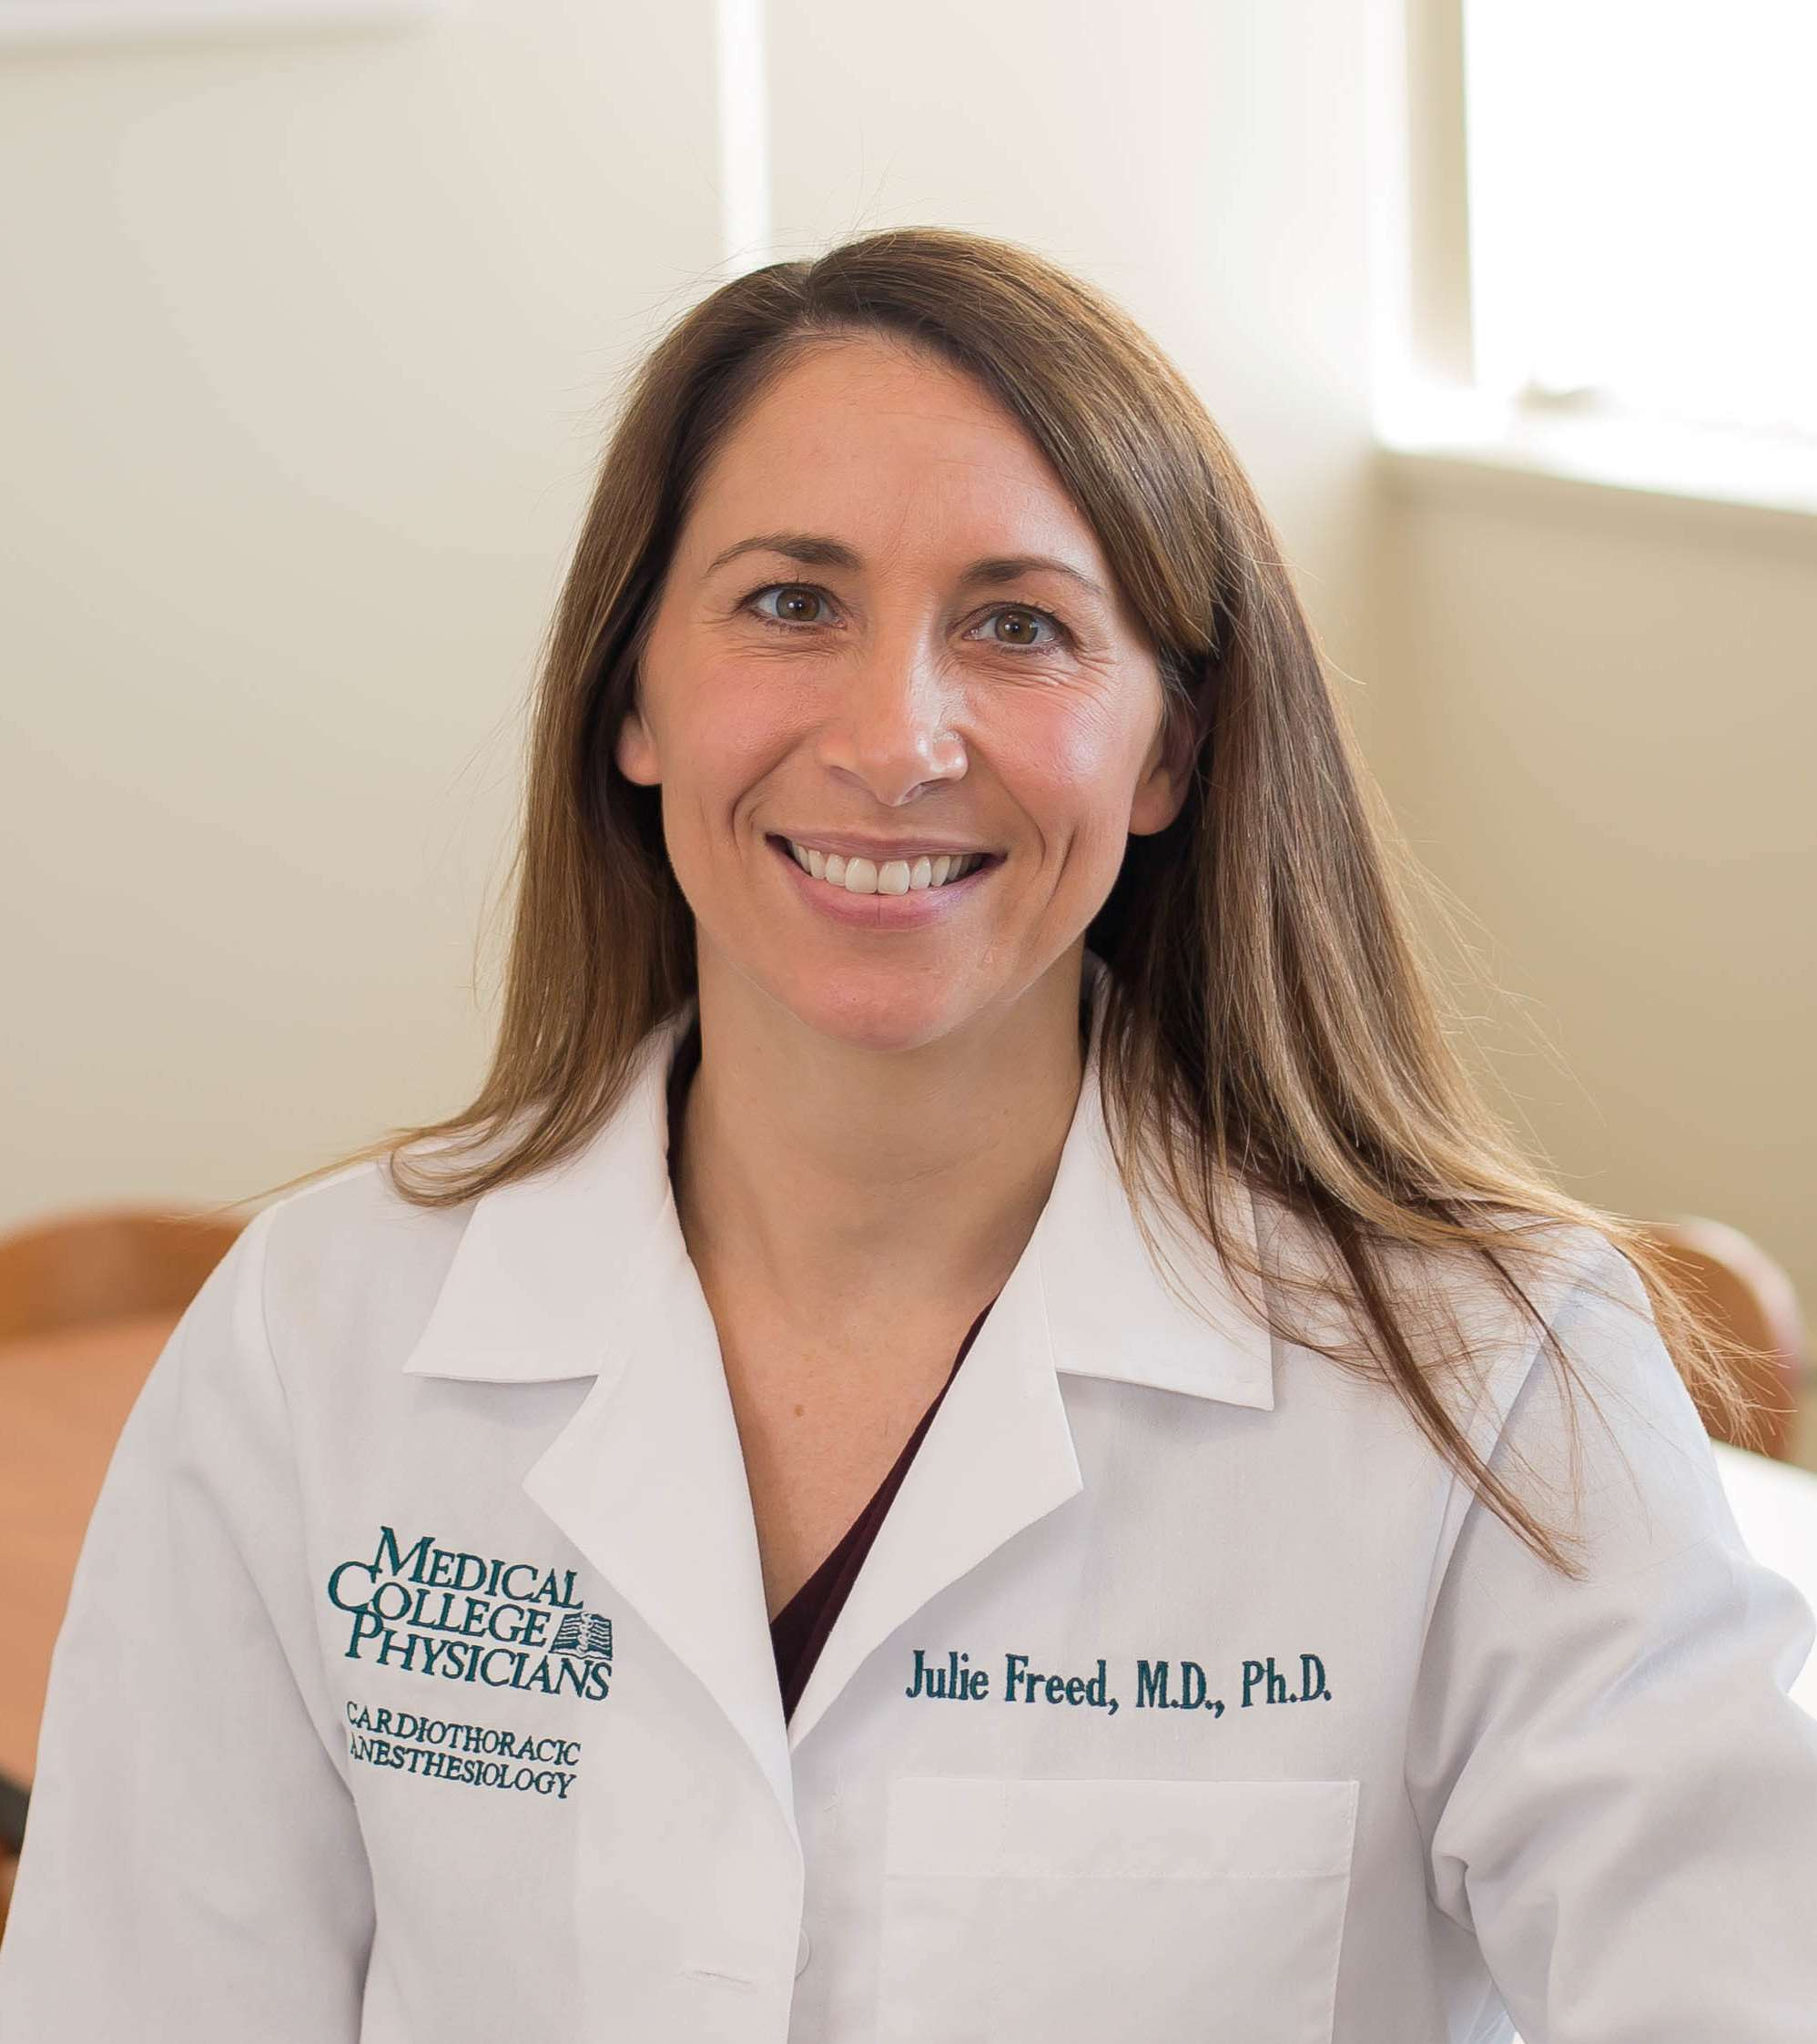 Dr Julie Freed, MD, PhD